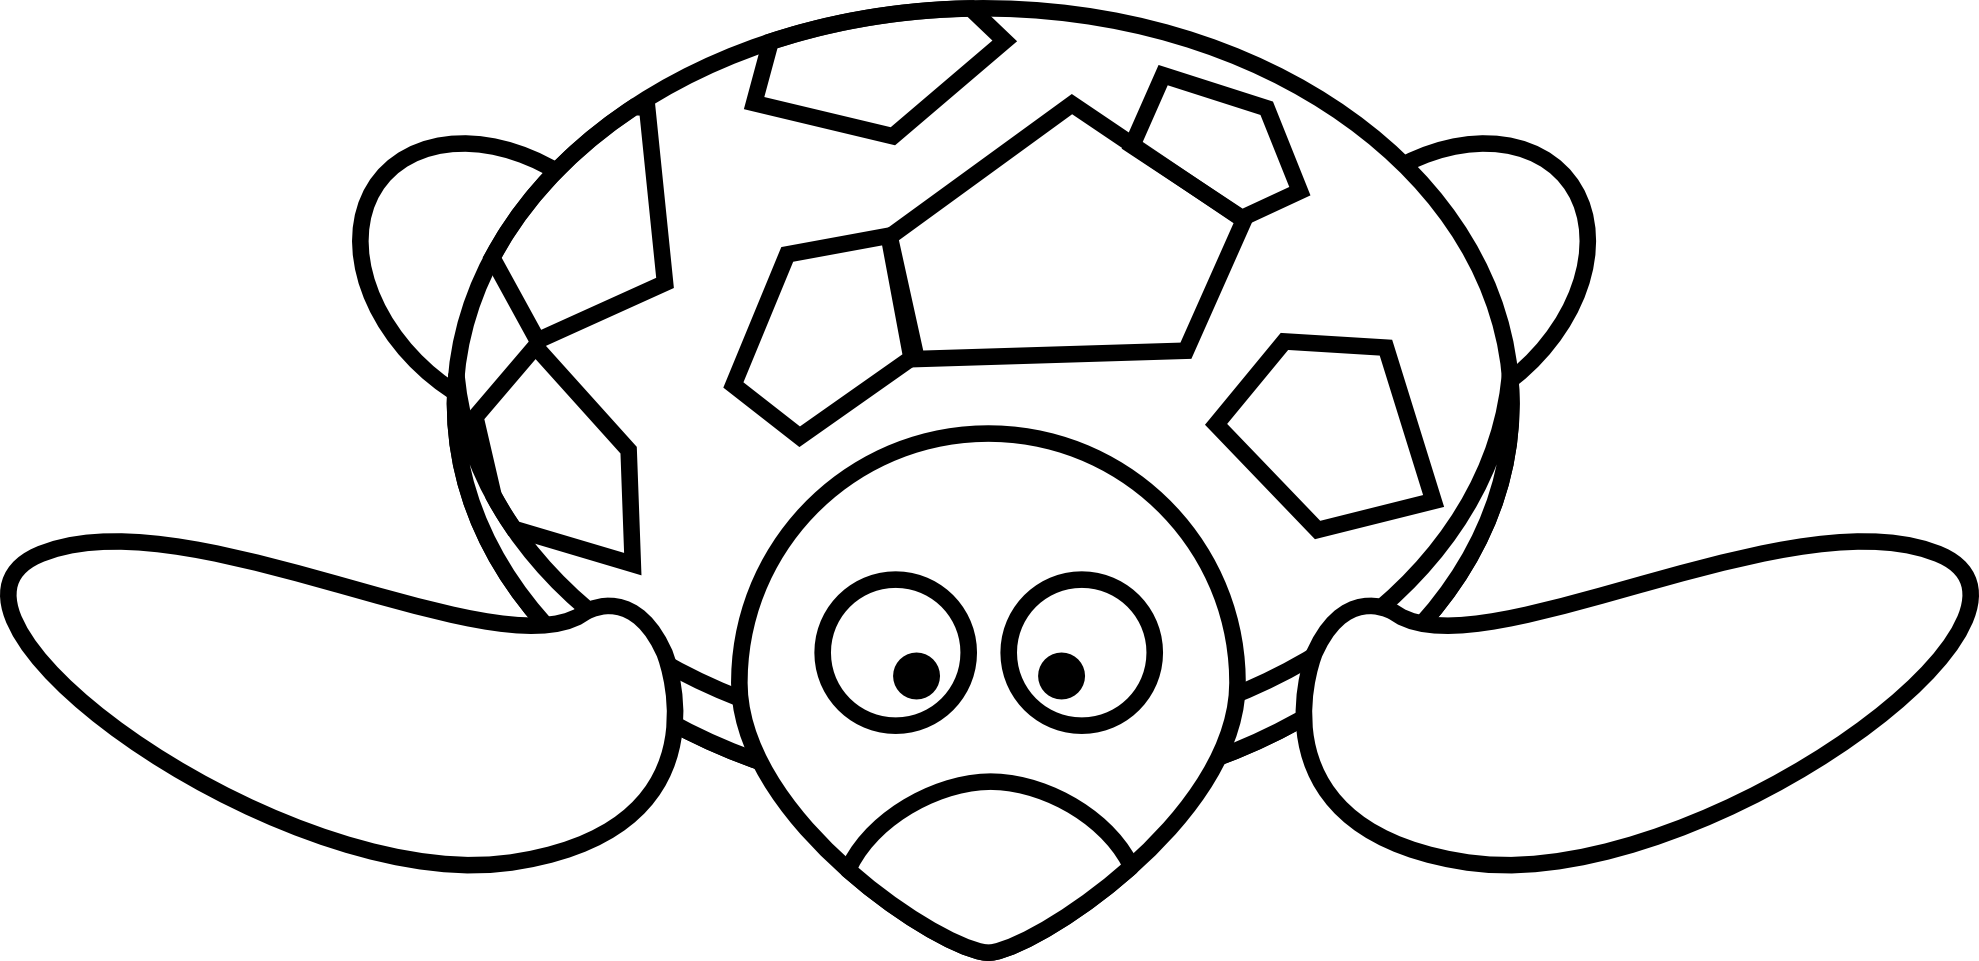 Drawing shell animated. Turtle images at getdrawings